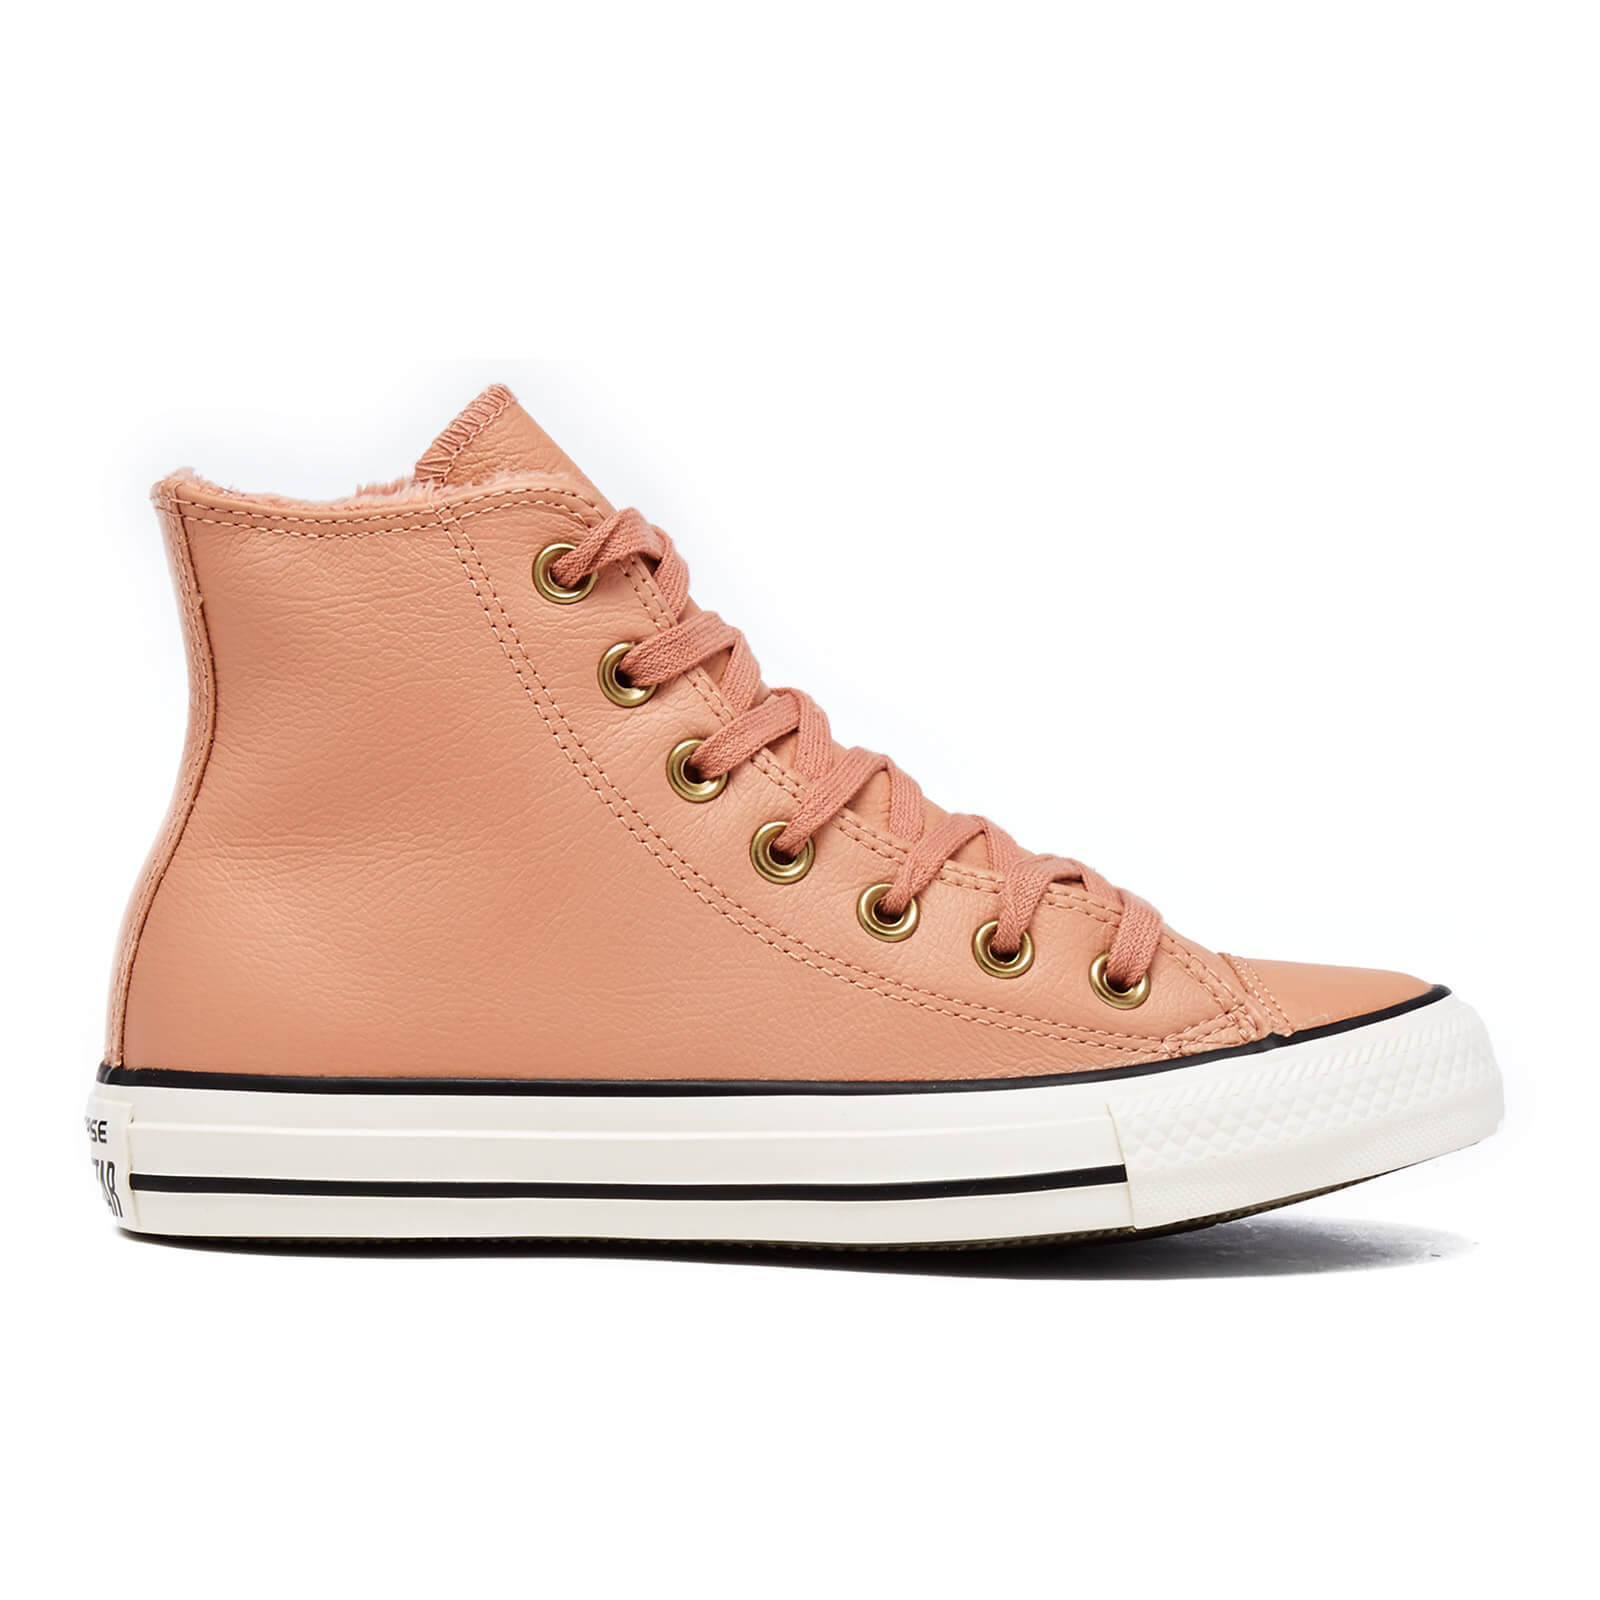 e95f75028a36 ... Converse Women s Chuck Taylor All Star Leather Fur Hi-Top Trainers -  Pink Blush